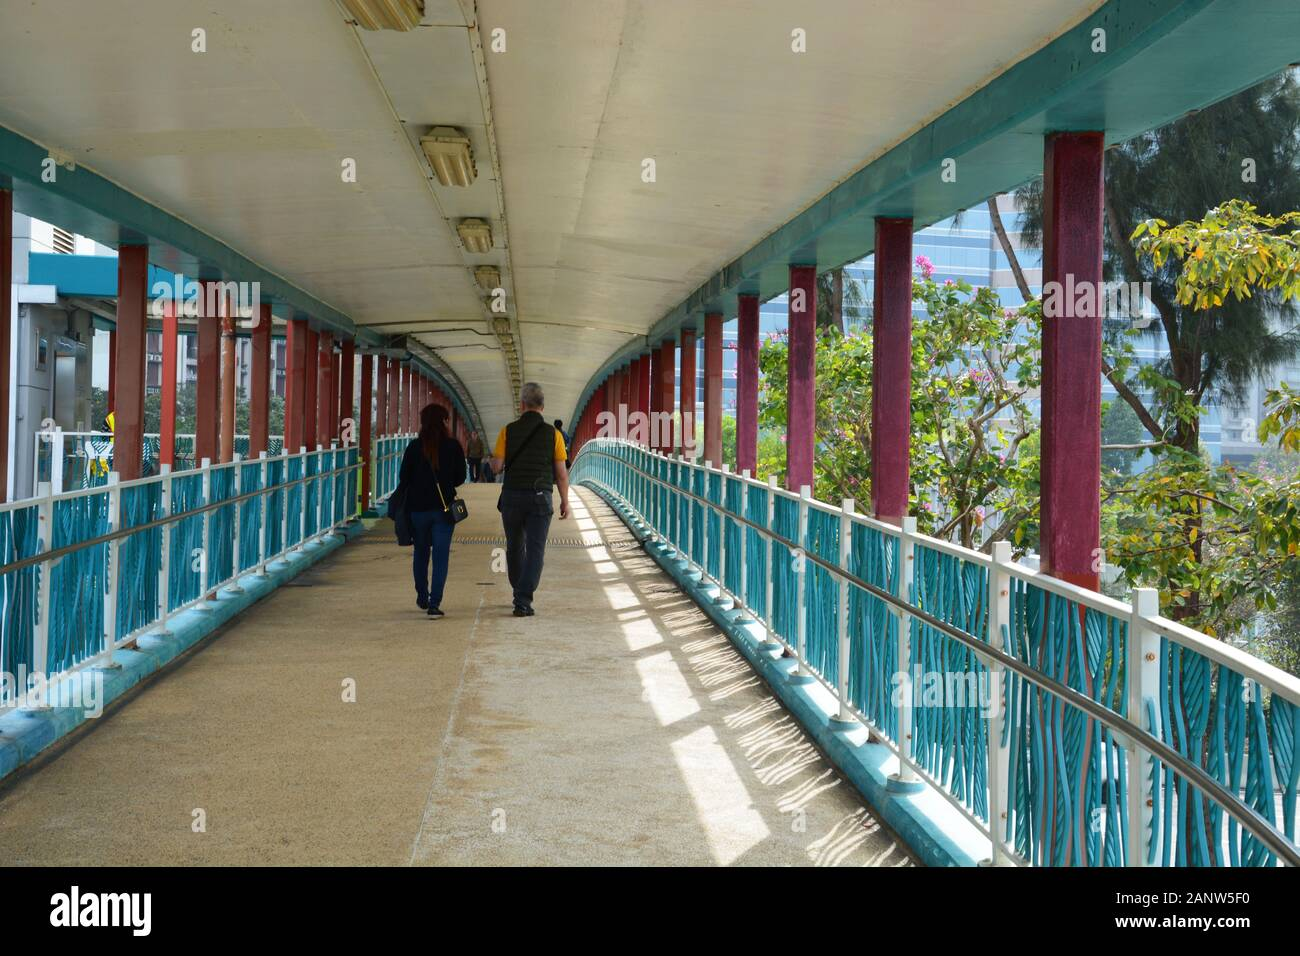 The pedestrian overpass at Quarry Bay Park along Victoria Harbour in Hong Kong. Stock Photo